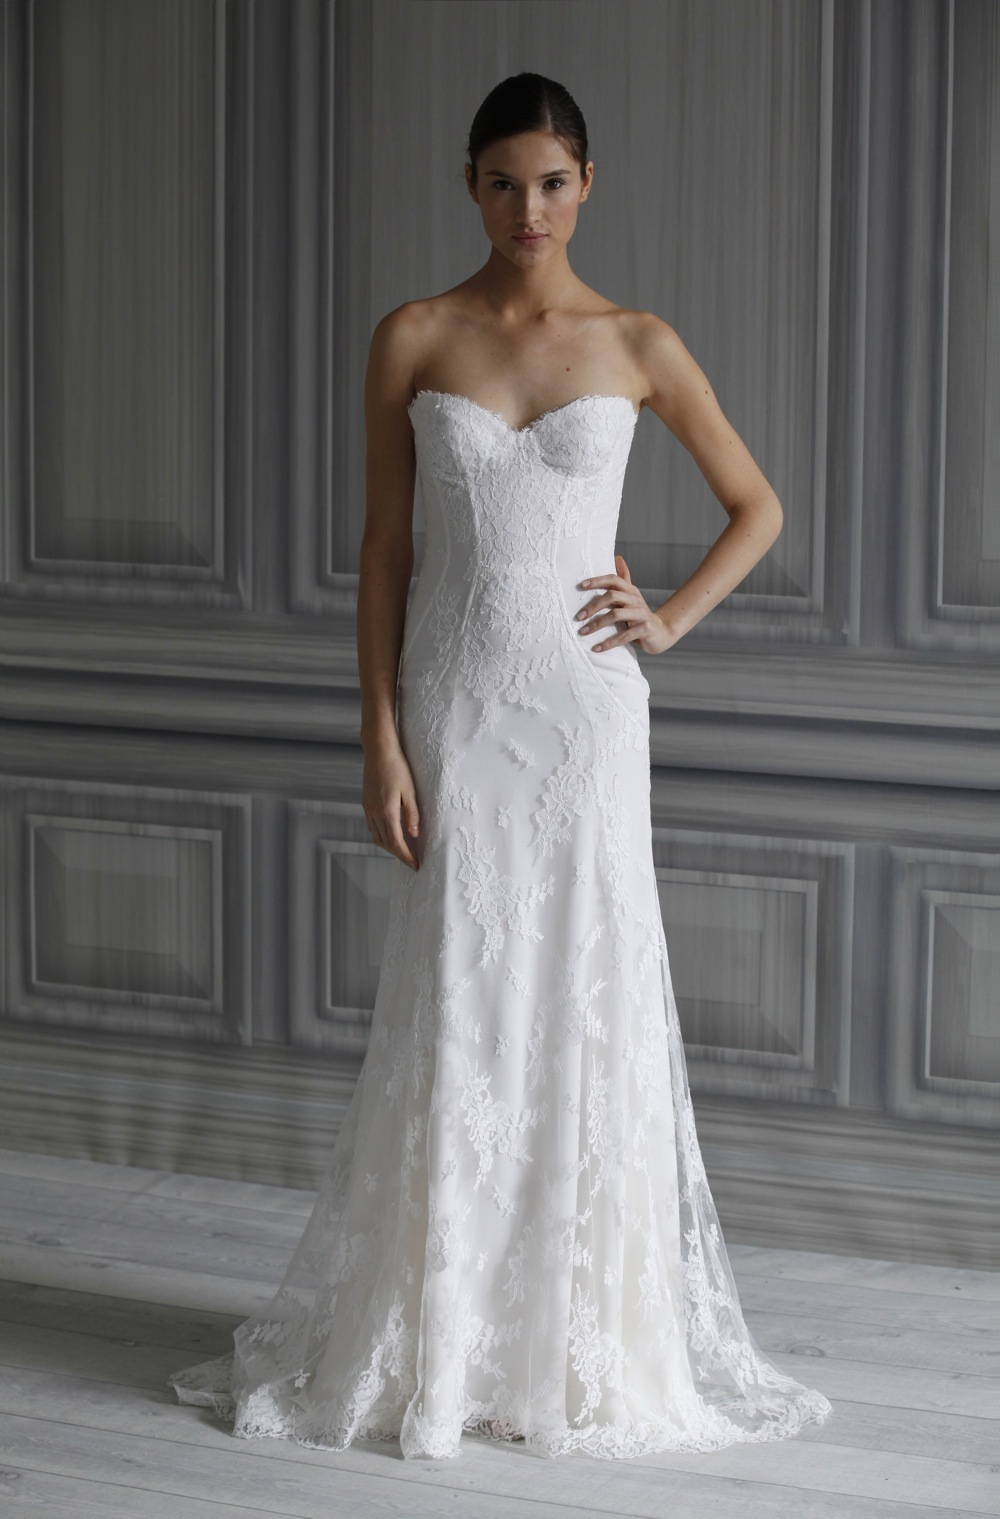 Wedding-dress-monique-lhuillier-bridal-gowns-spring-2012-nantucket.full